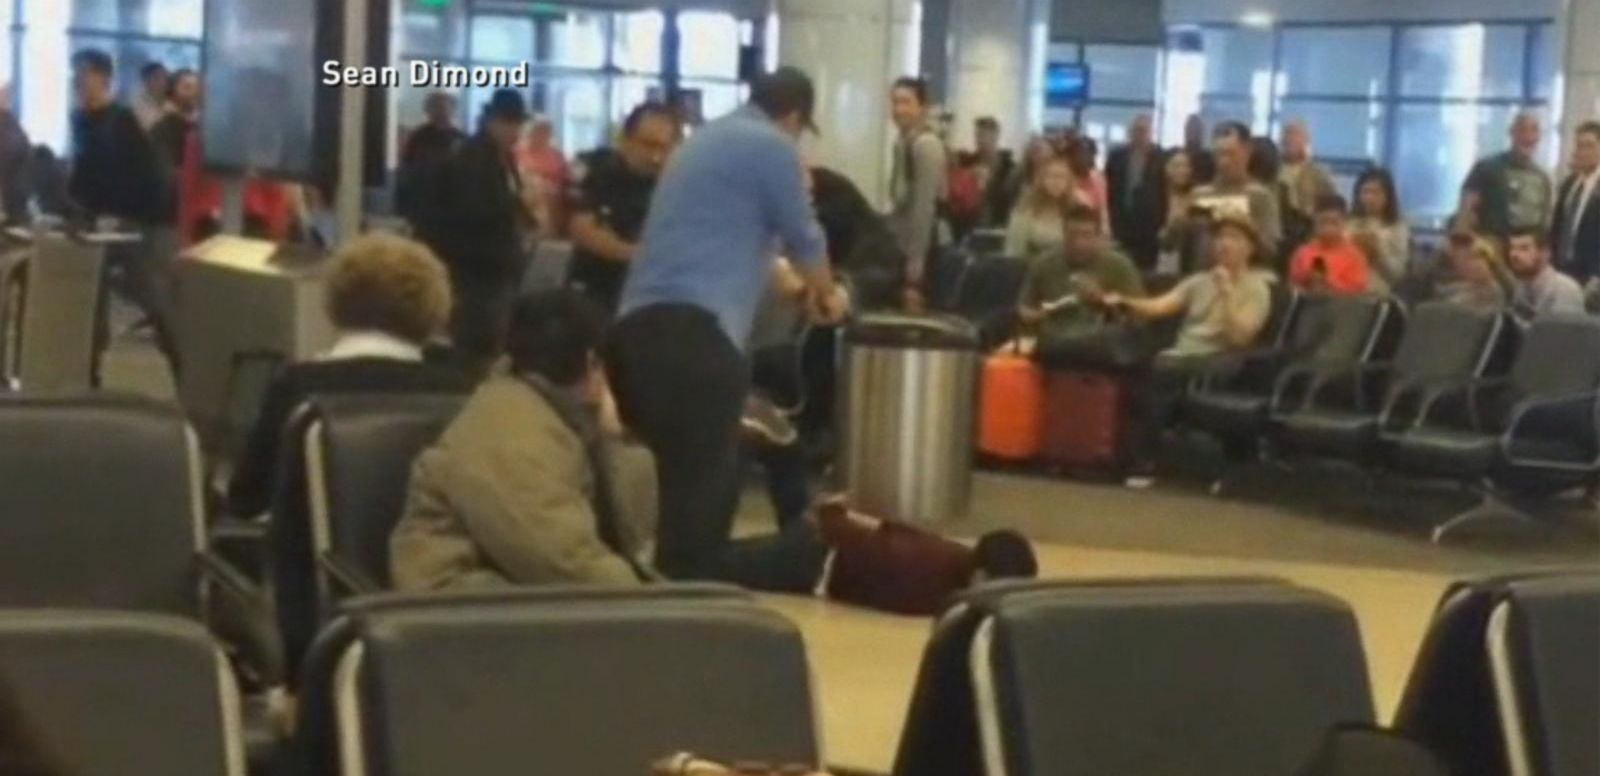 VIDEO: Airport Scare: Police Taser Man in LAX Terminal